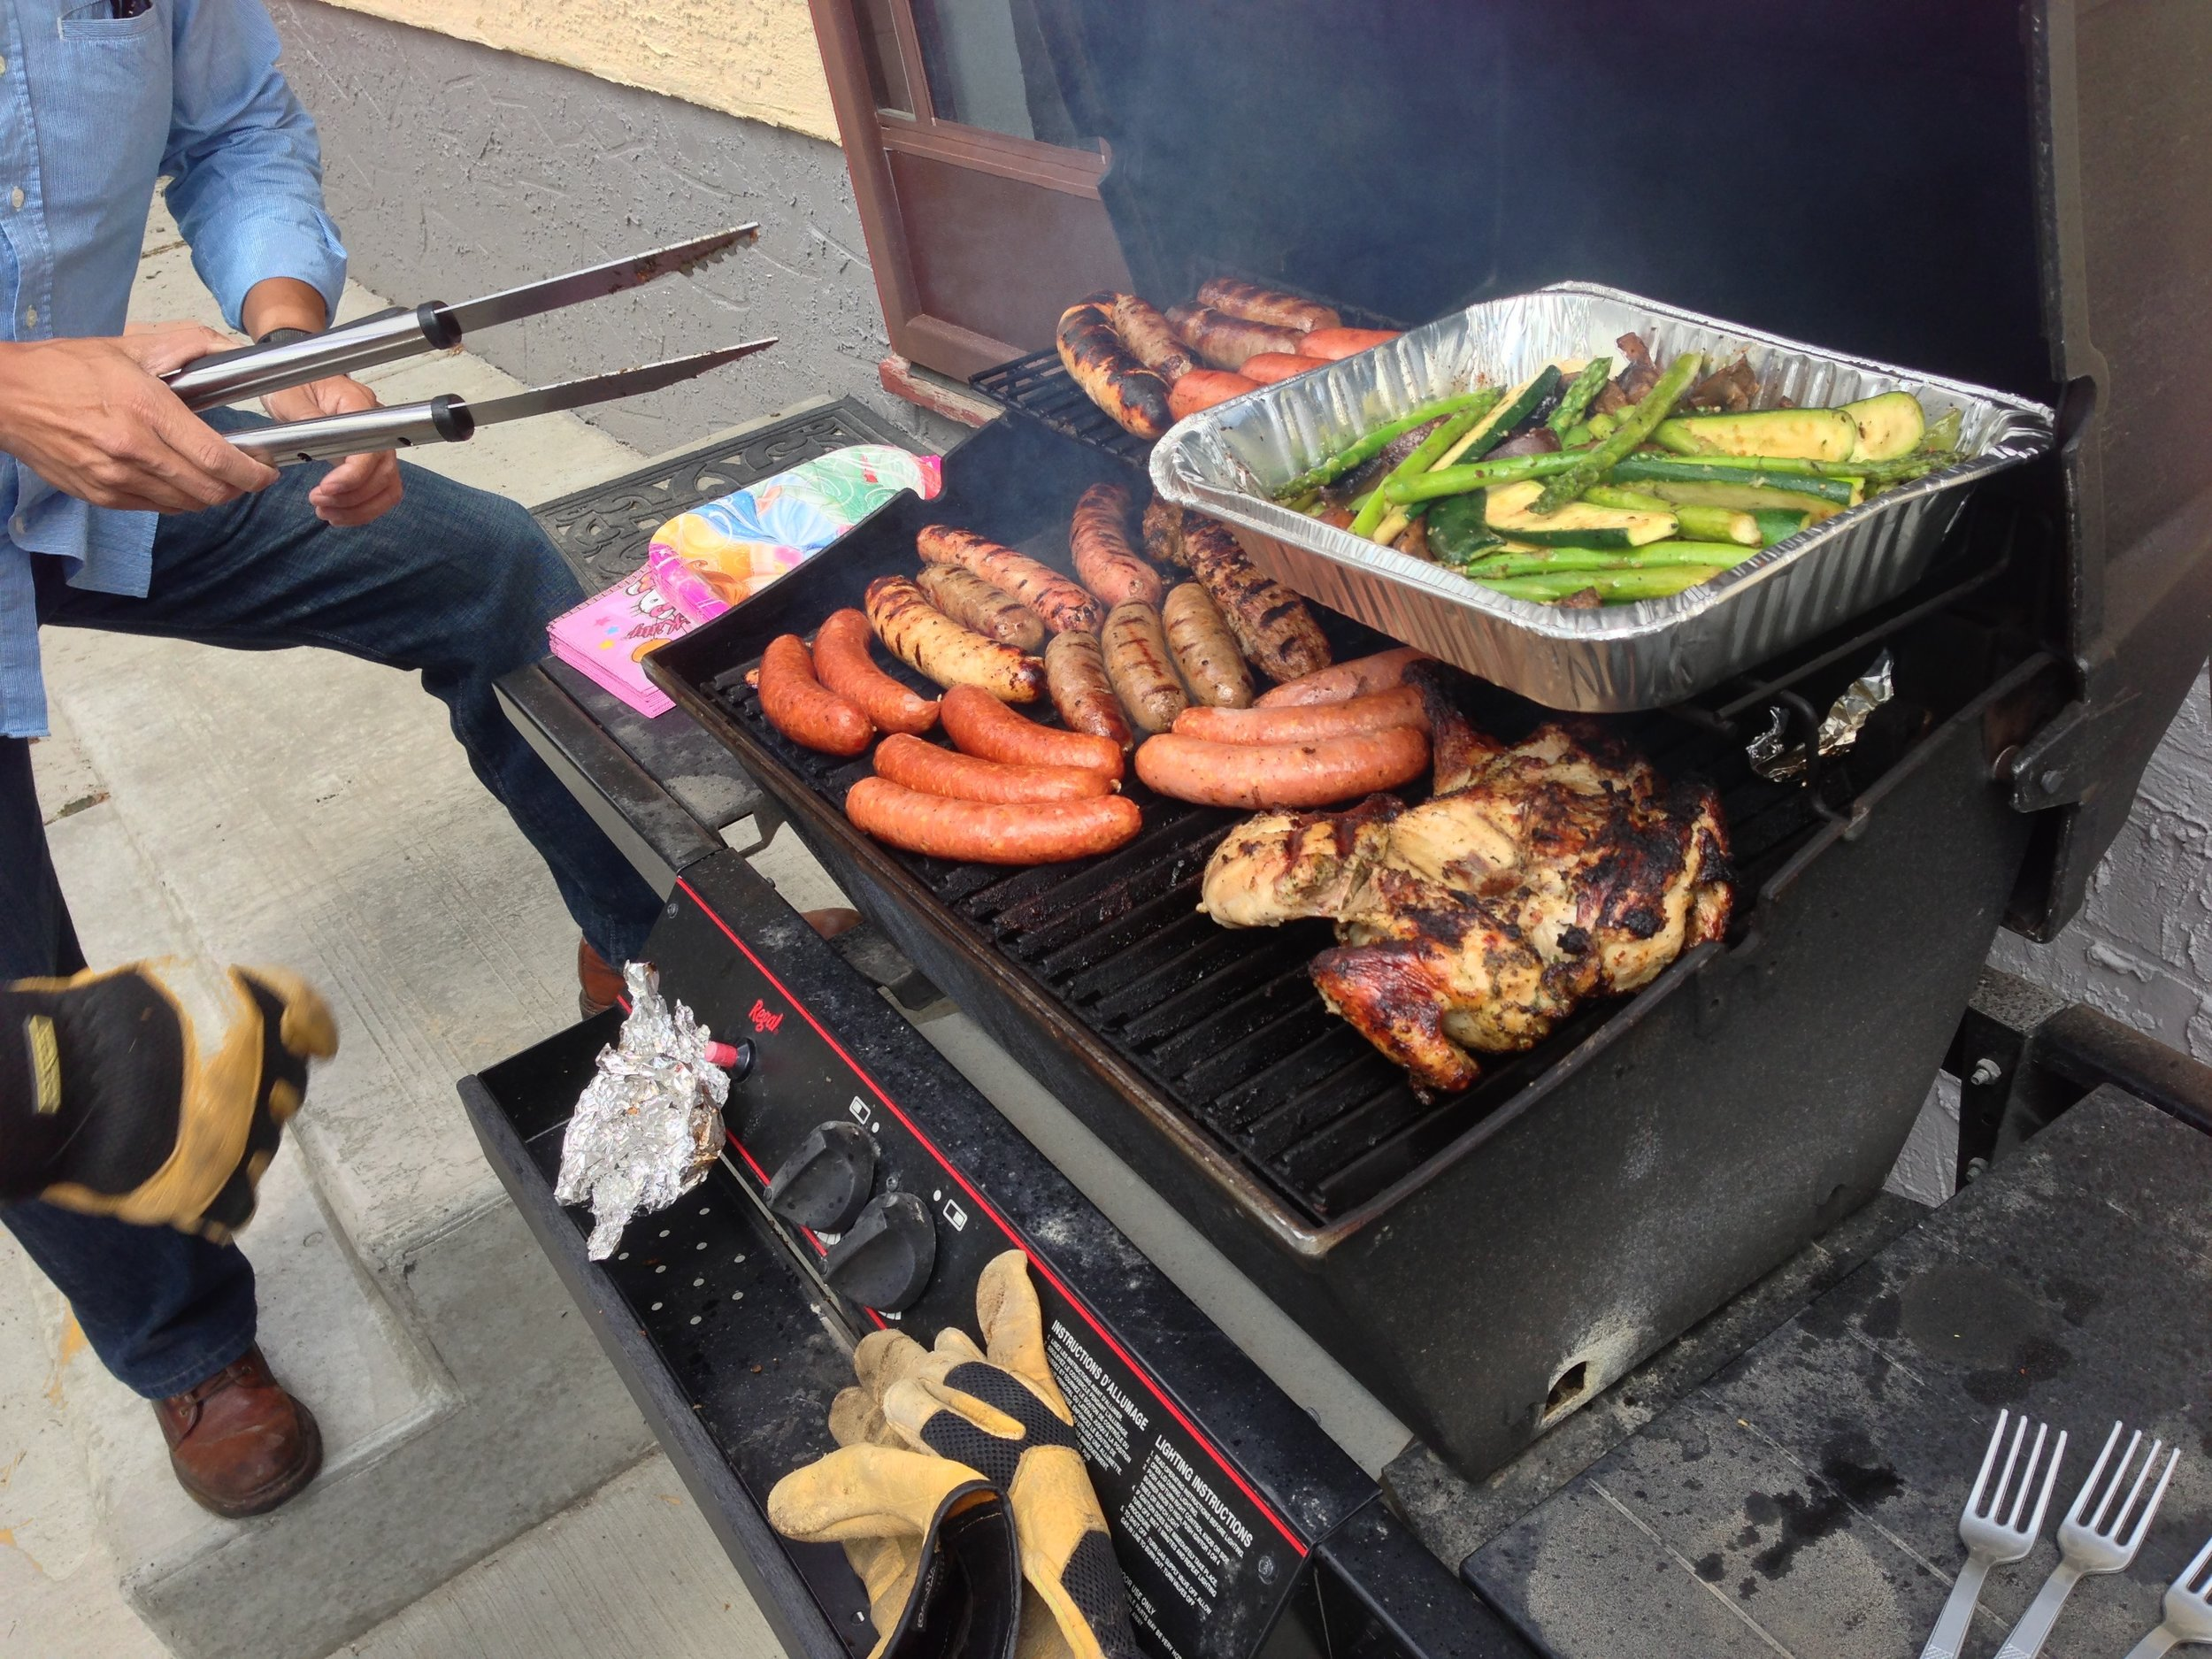 A buncha dudes and their wieners on the BBQ